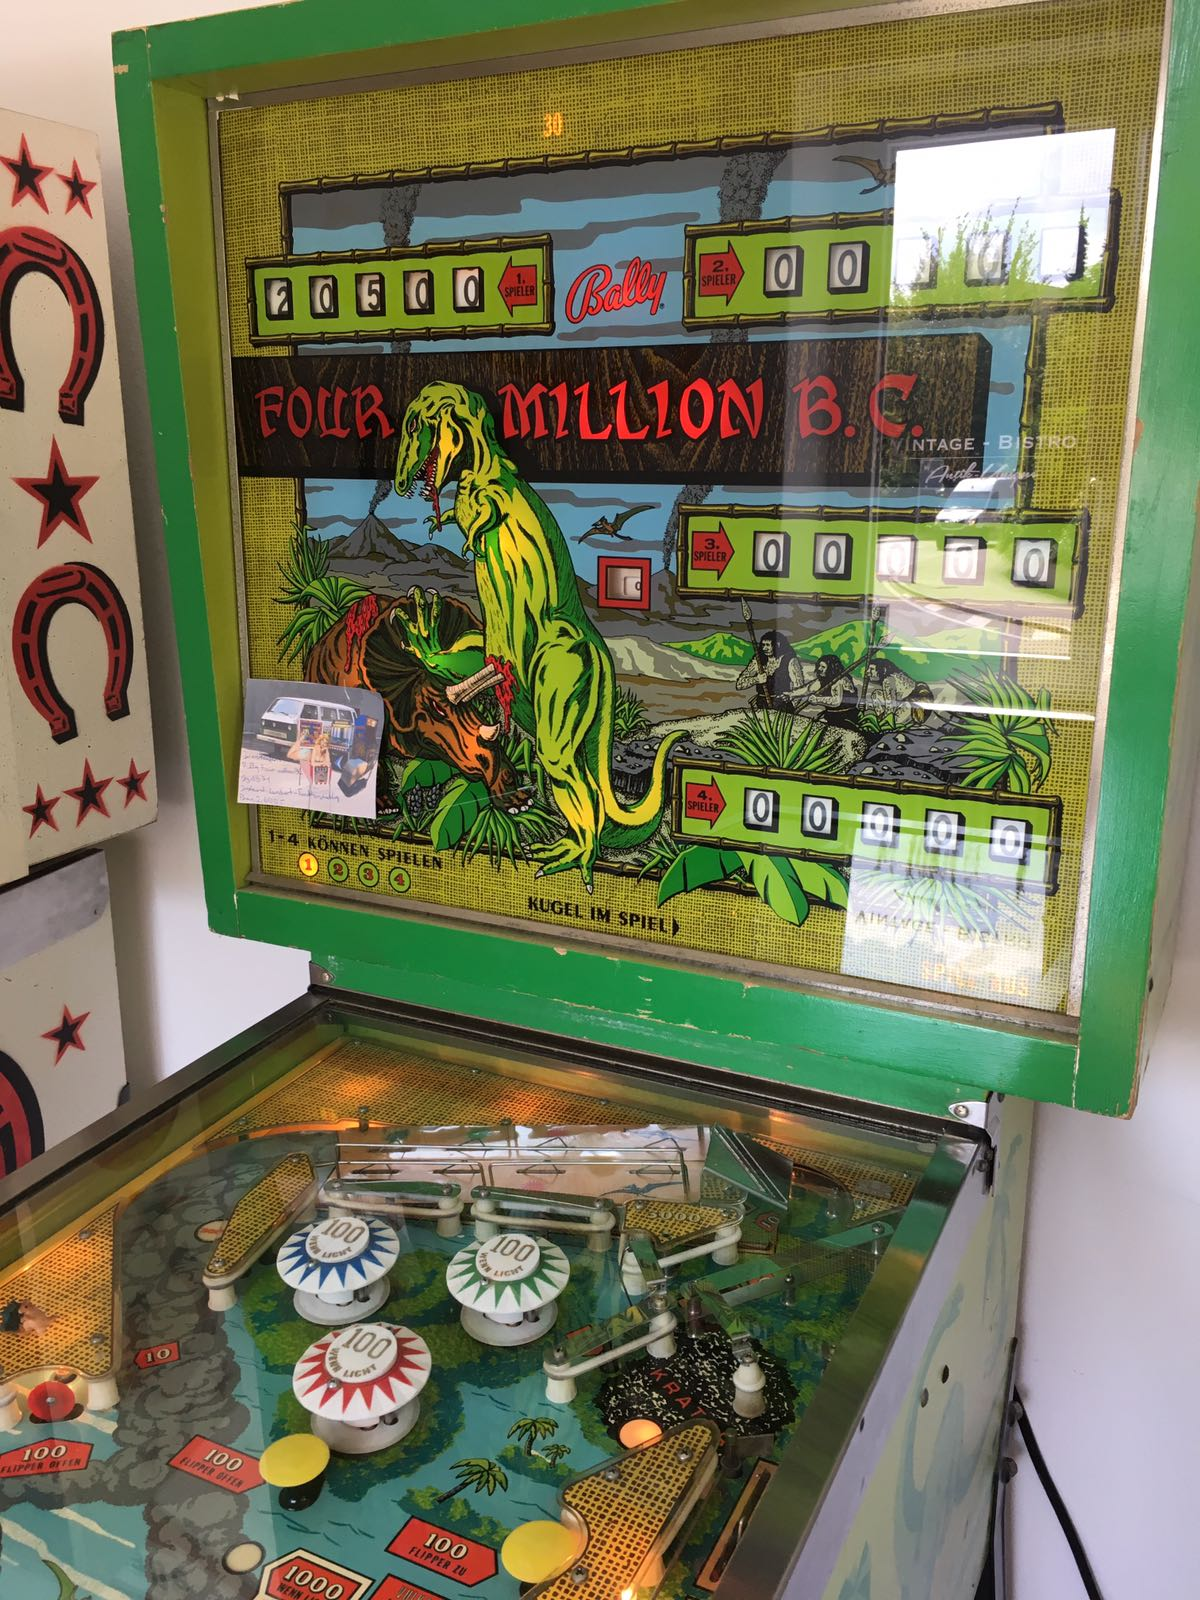 Flipper Bally Four Million B.C.